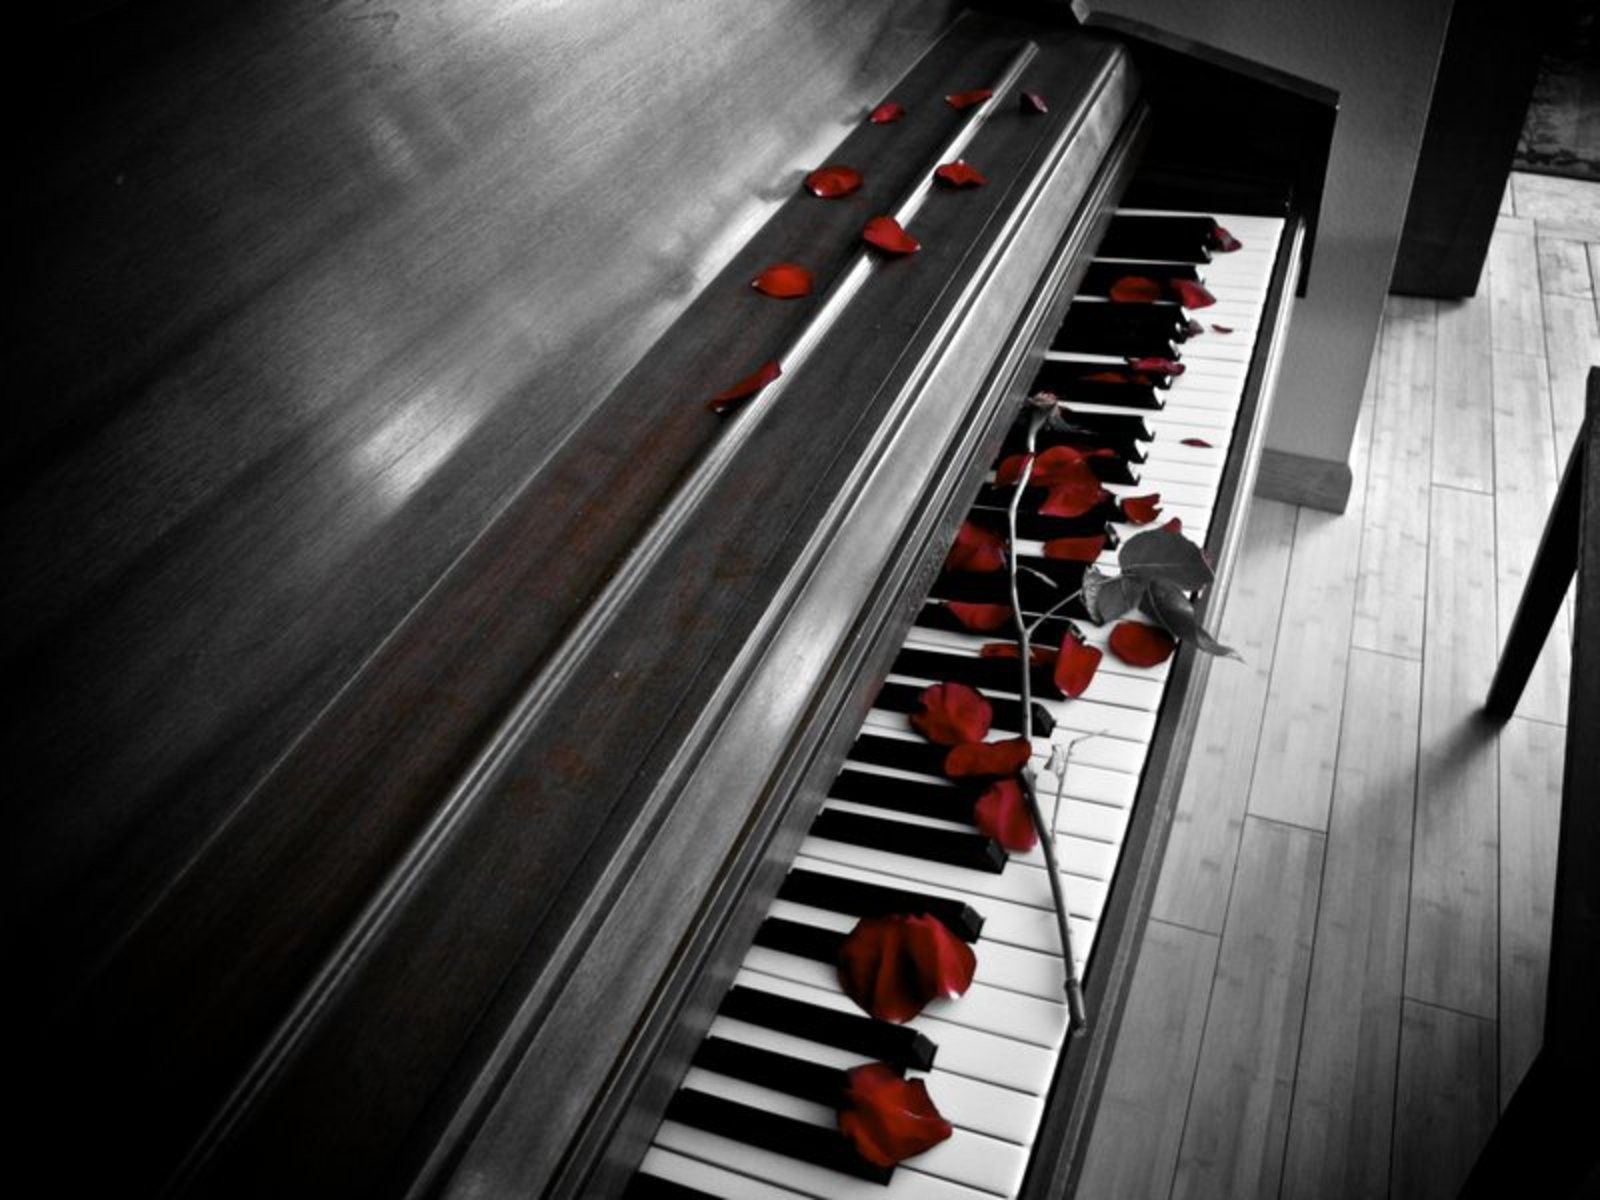 abstract piano art wallpaper - photo #21